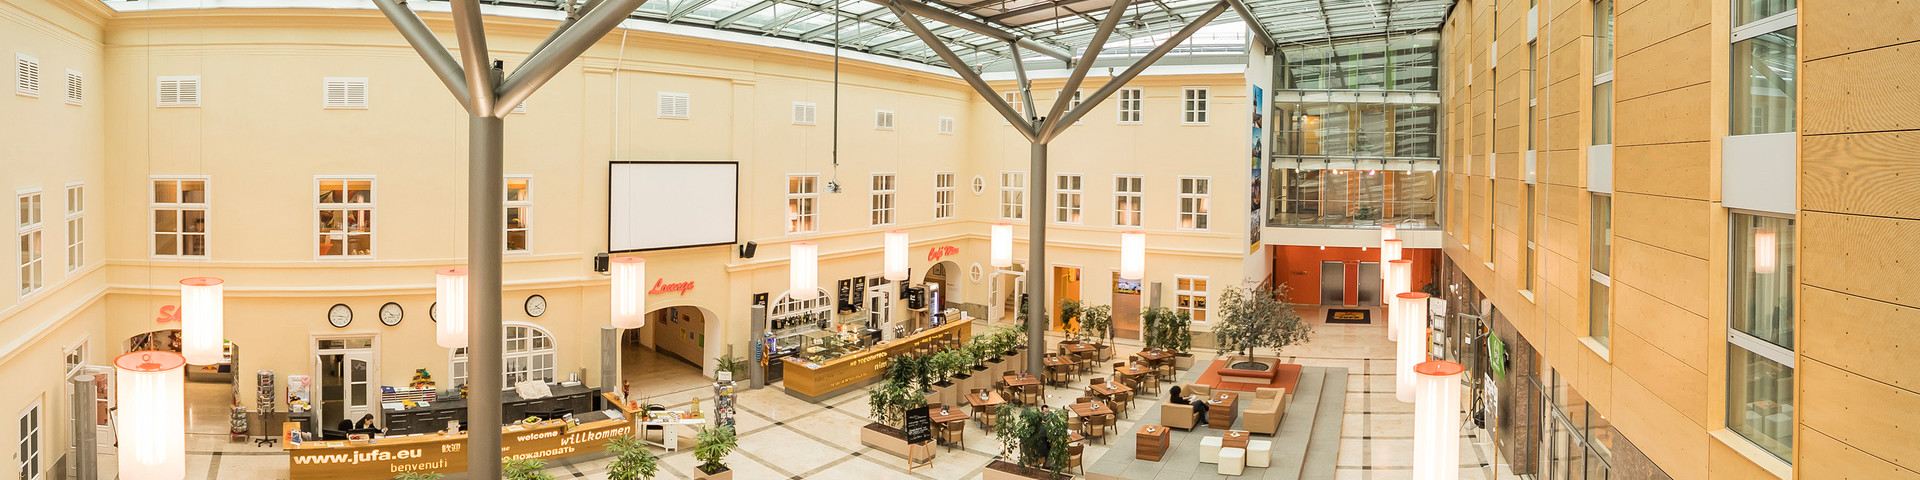 JUFA Hotel Wien City - Panorama Atirum Glasdach © JUFA Hotel Wien City